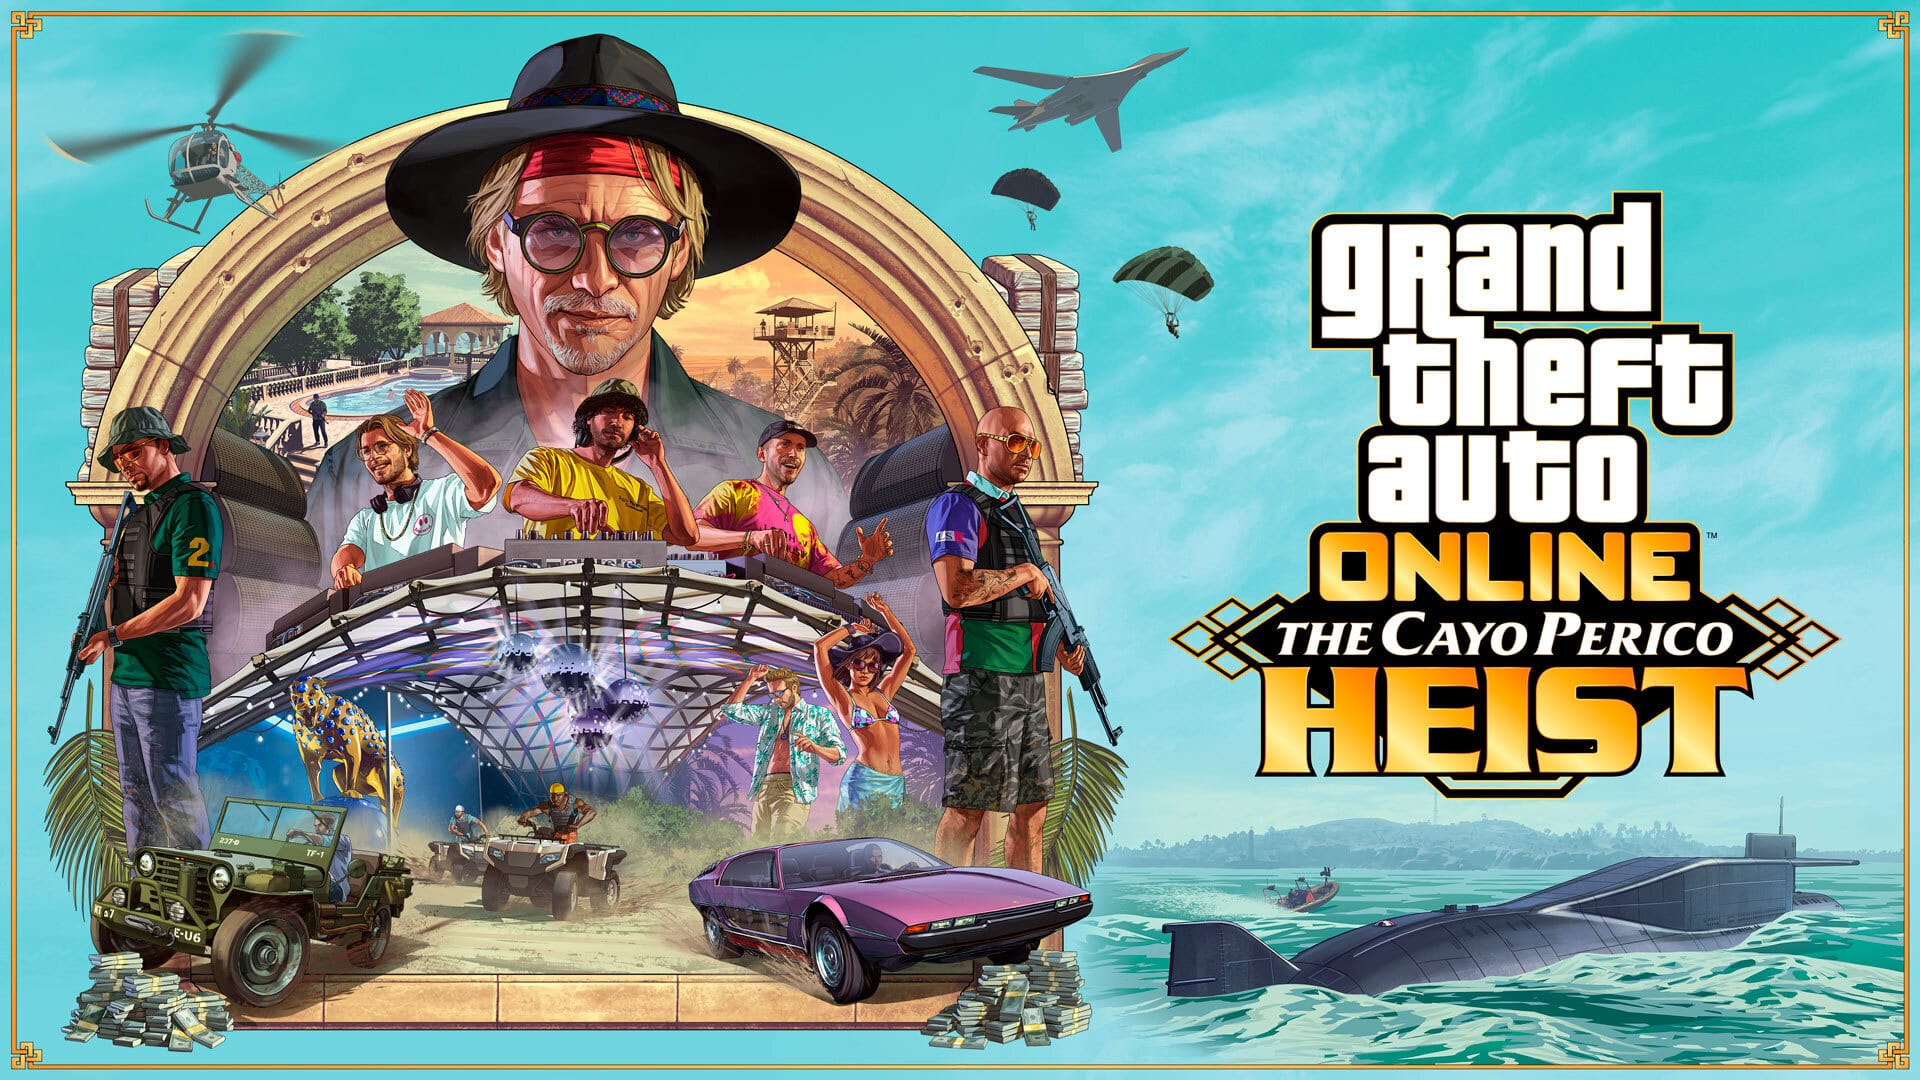 Grand Theft Auto Online Cayo Perico Heist Launch